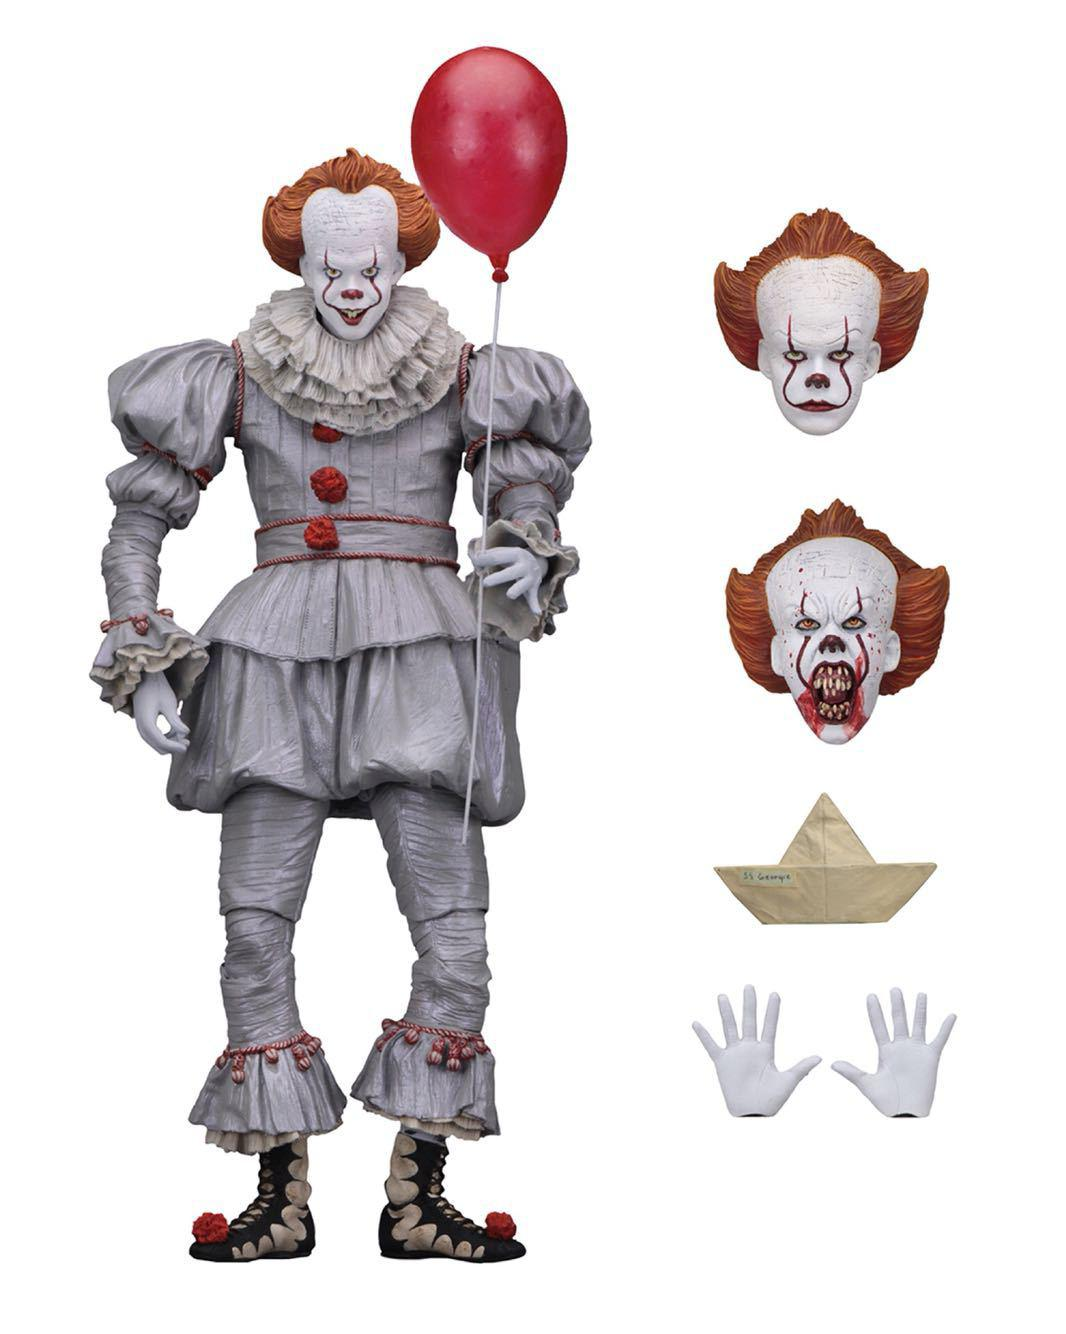 цены Neca Original Stephen King's It Pennywise Joker clown BJD Action Figure Toys Dolls 18cm